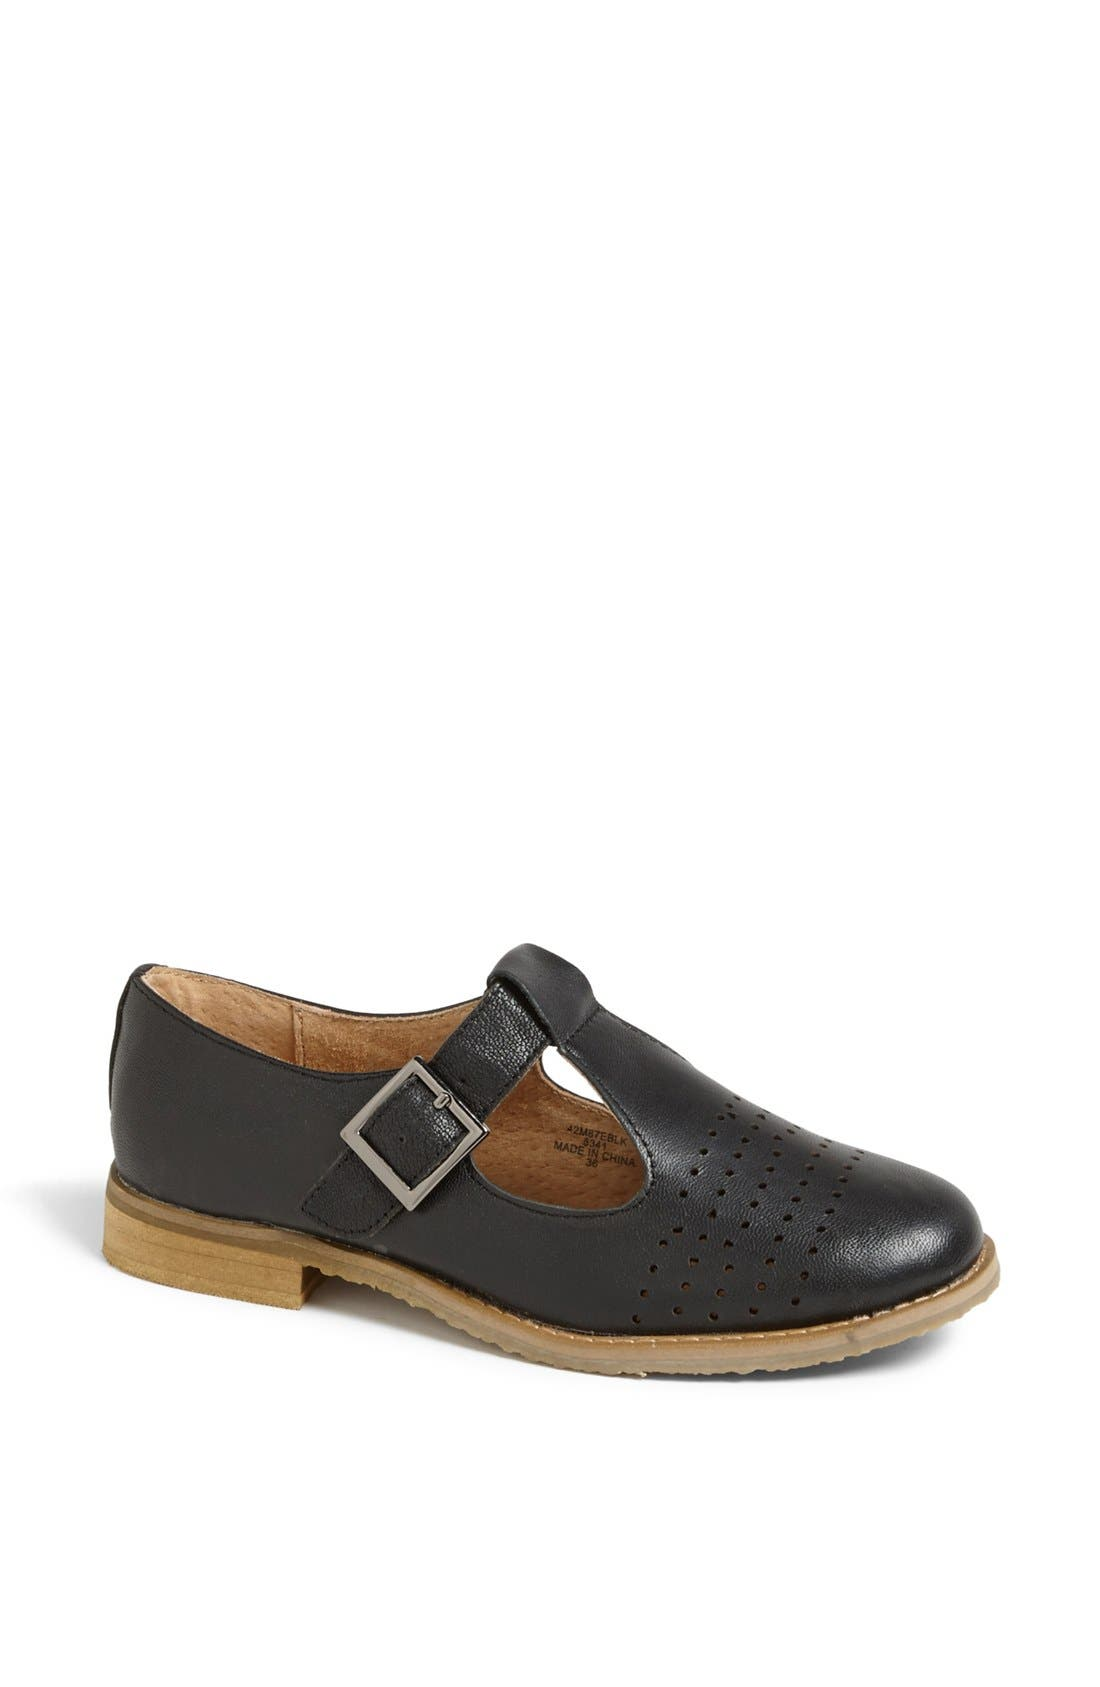 Main Image - Topshop 'Molly Geek' T-Bar Flat